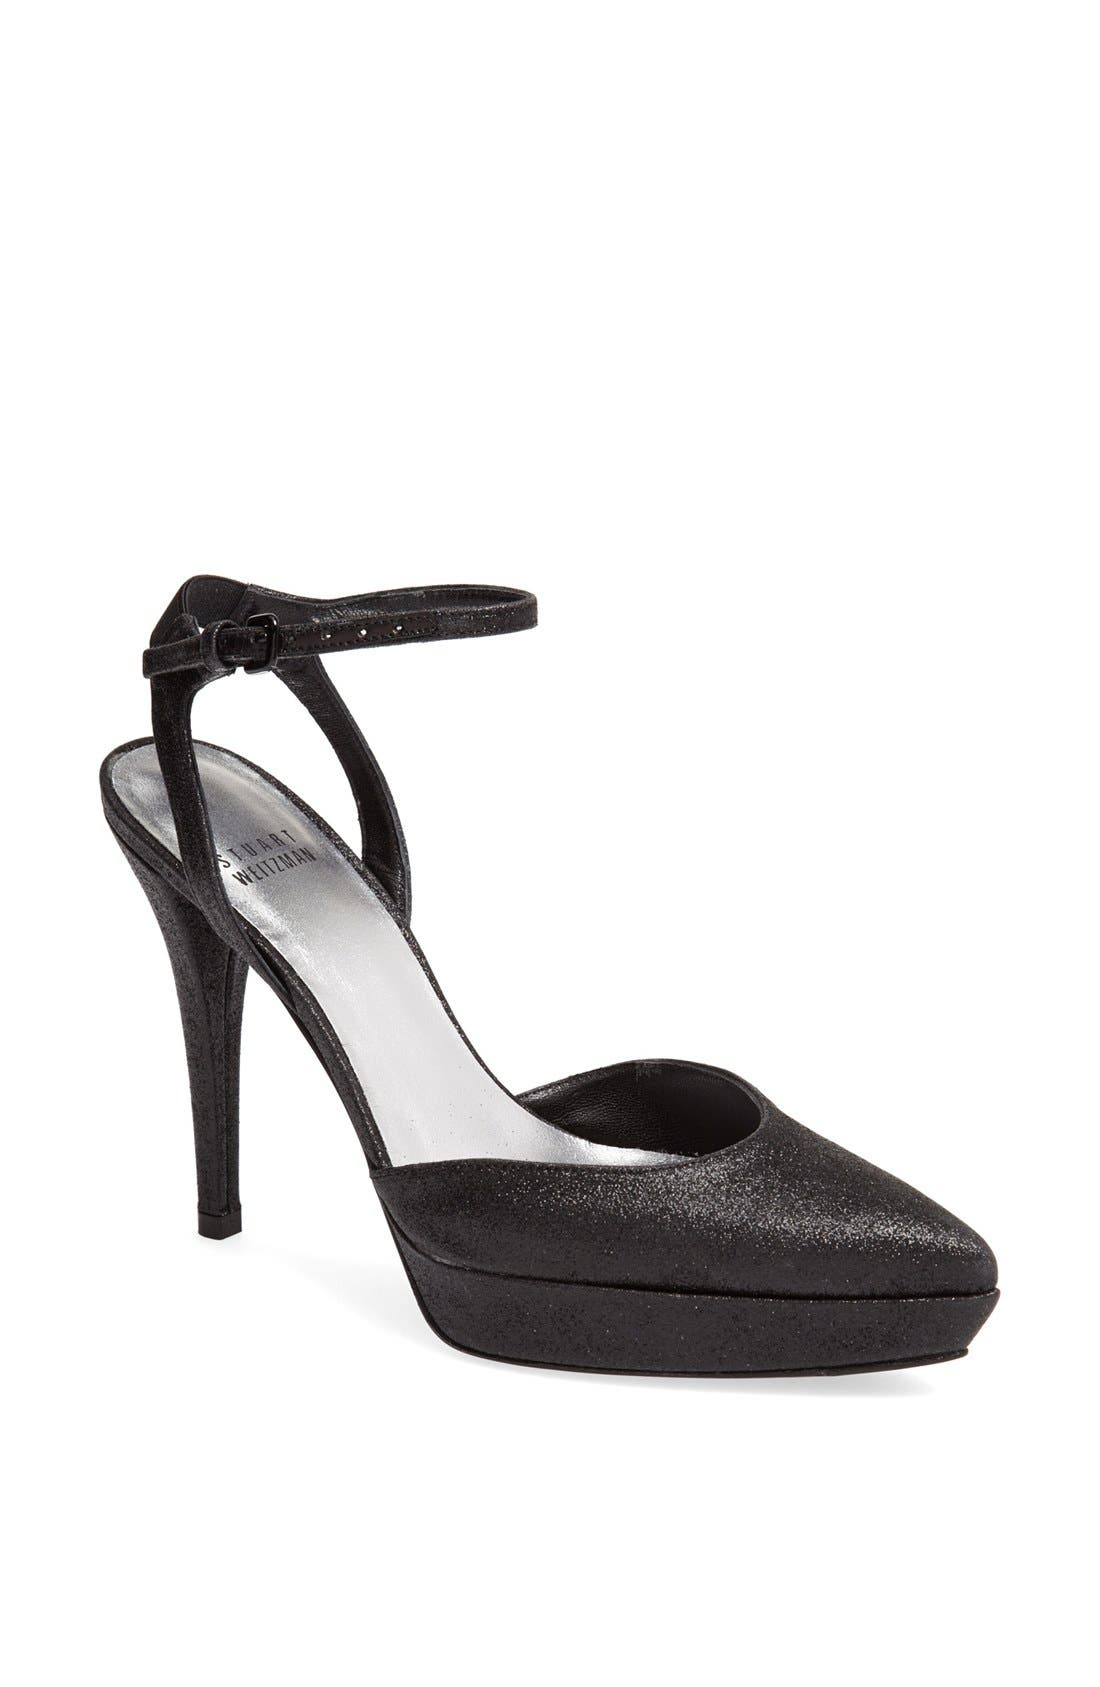 Alternate Image 1 Selected - Stuart Weitzman 'Singleton' Pump